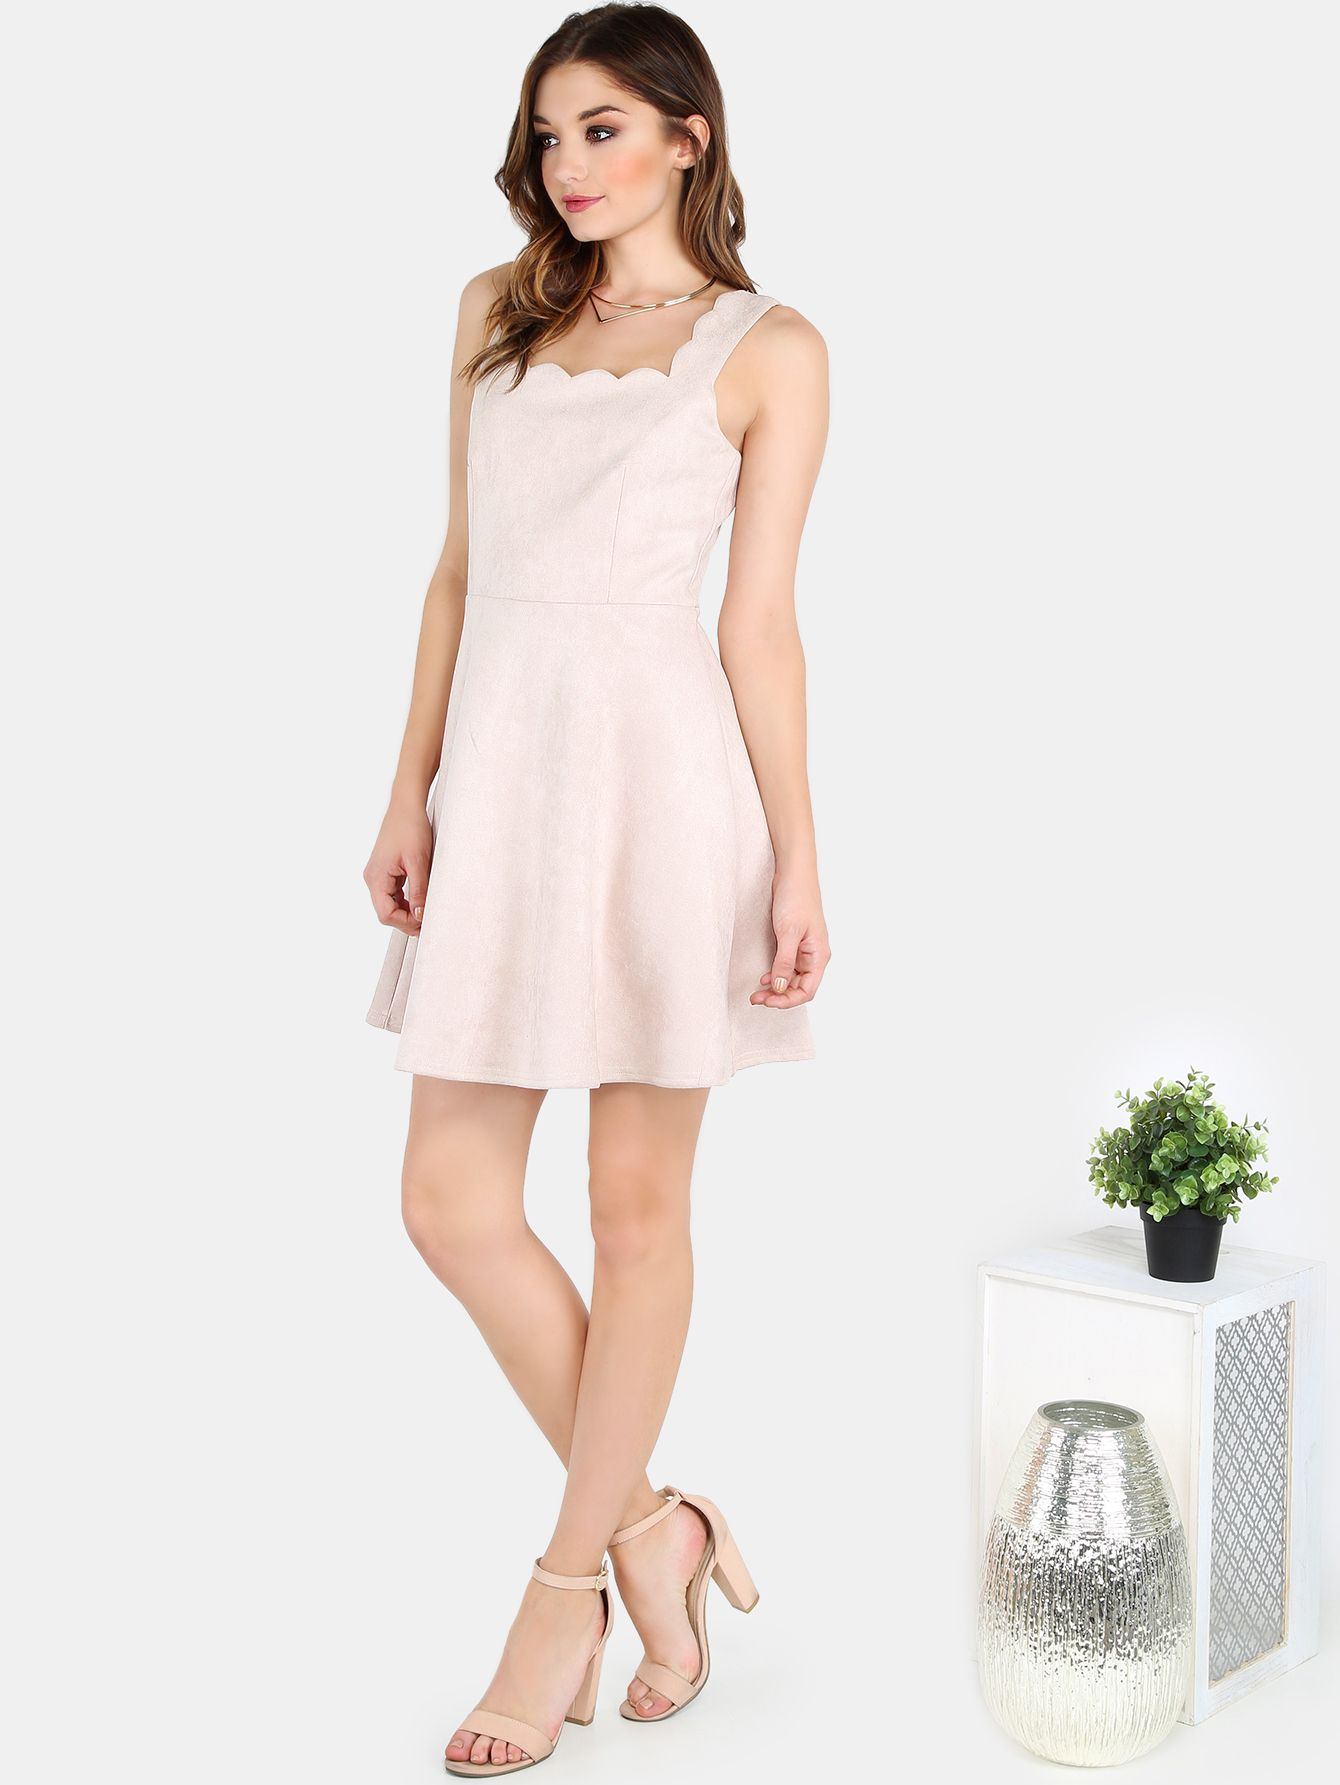 Shop Faux Suede Scallop Skater Dress TAUPE online. SheIn offers Faux Suede Scallop Skater Dress TAUPE & more to fit your fashionable needs.